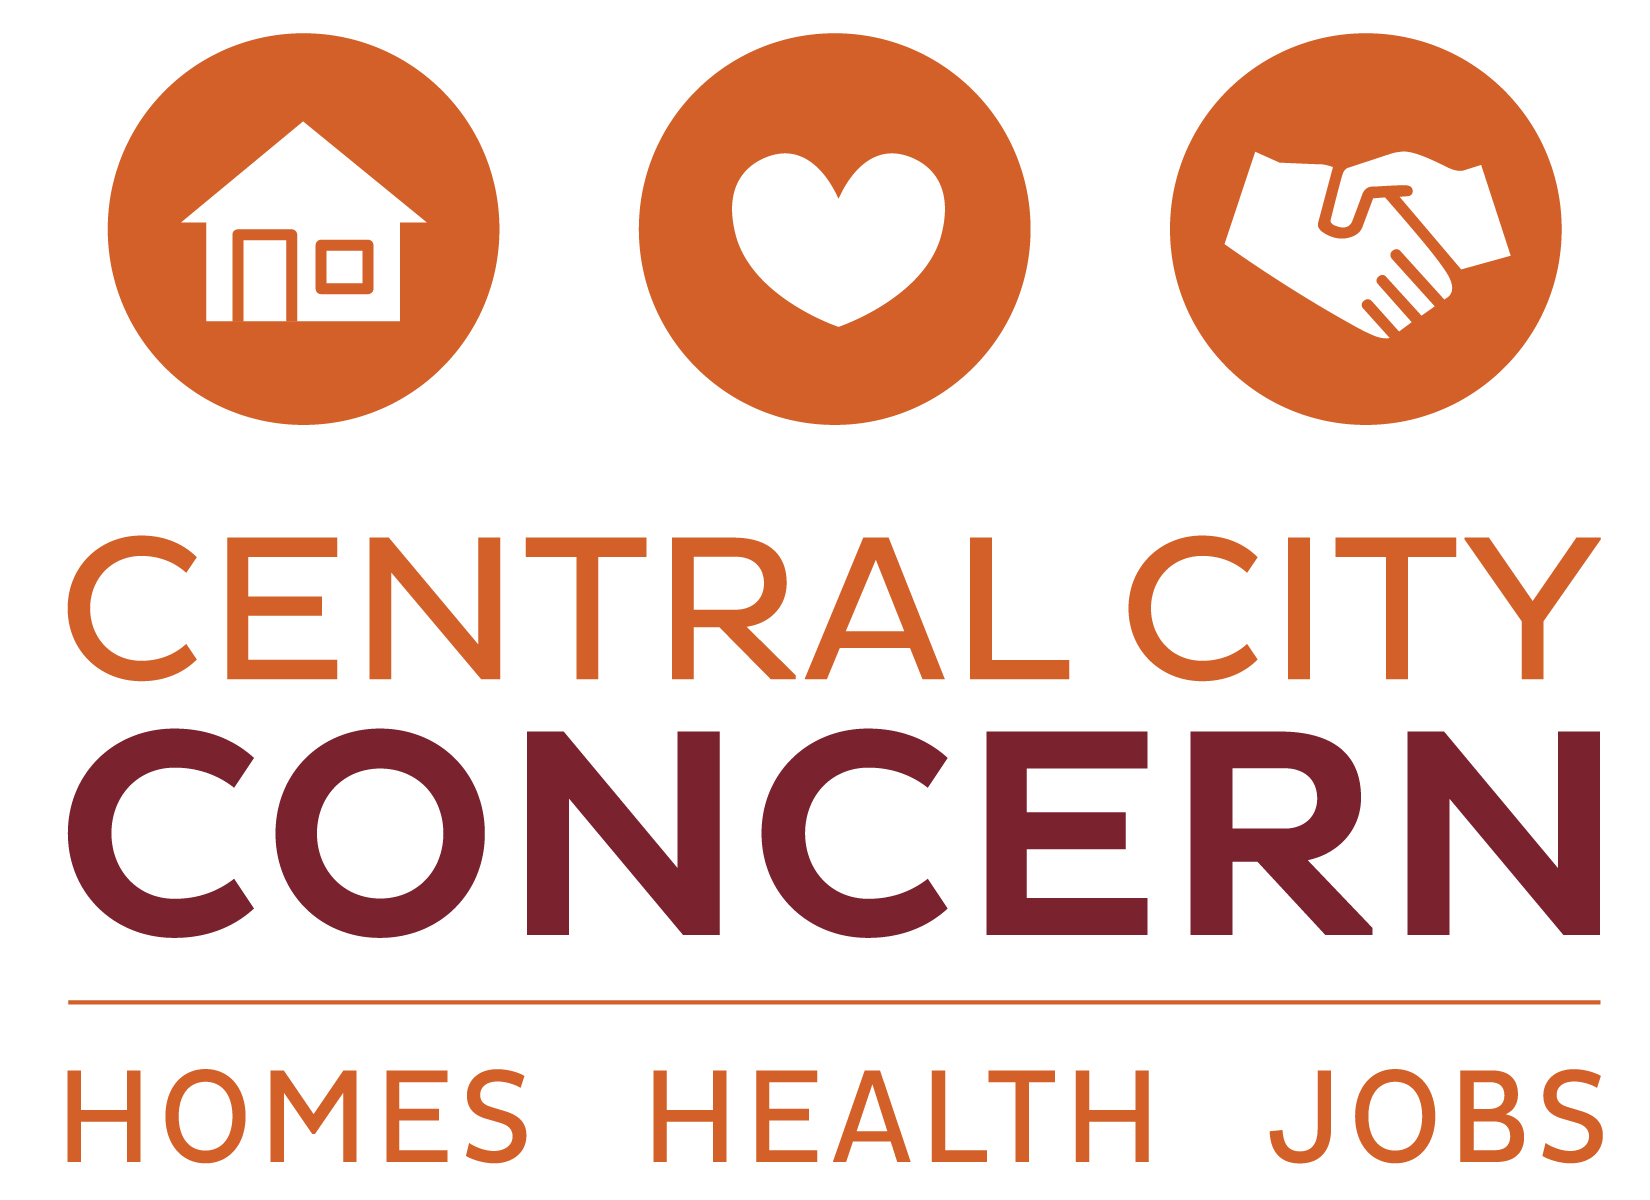 Creating a logo to tell Center City Concern's story